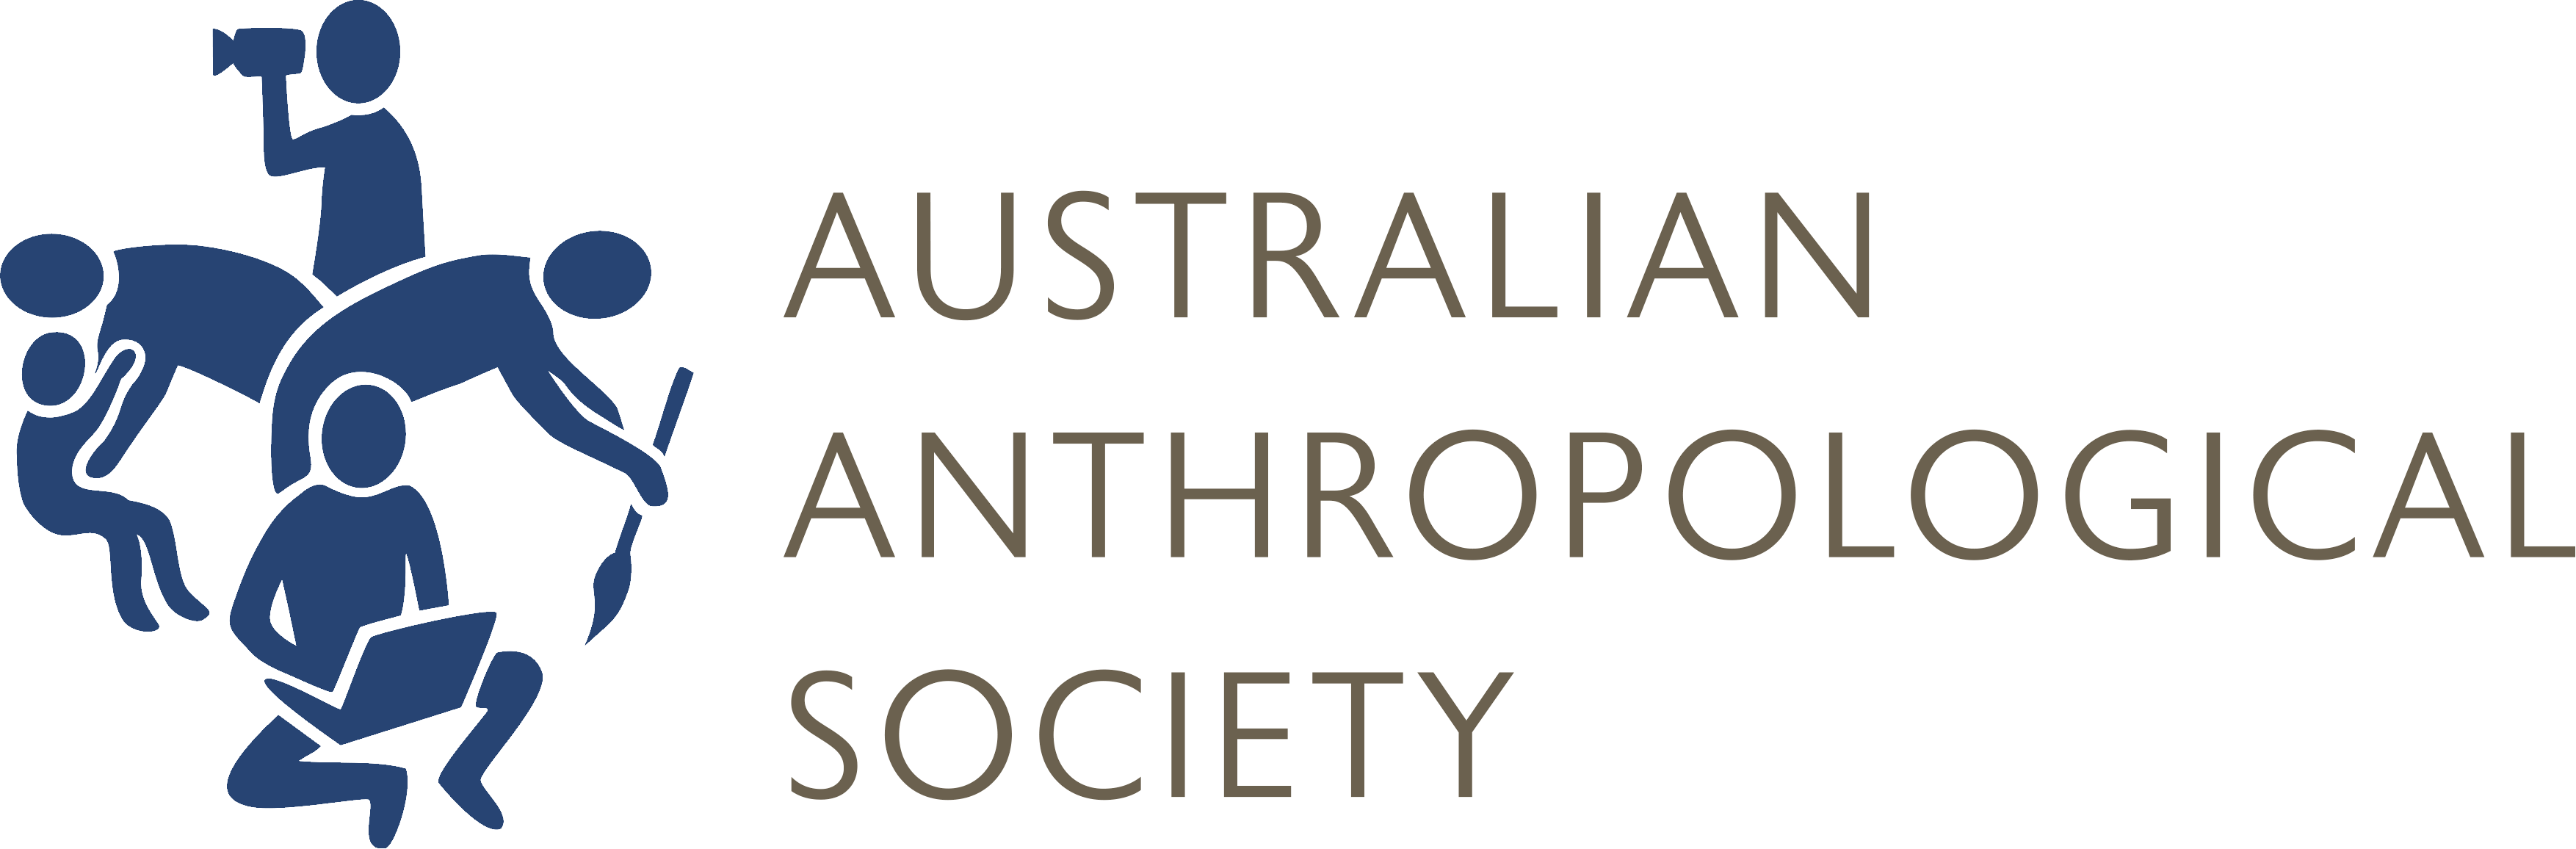 Australian Anthropological Society